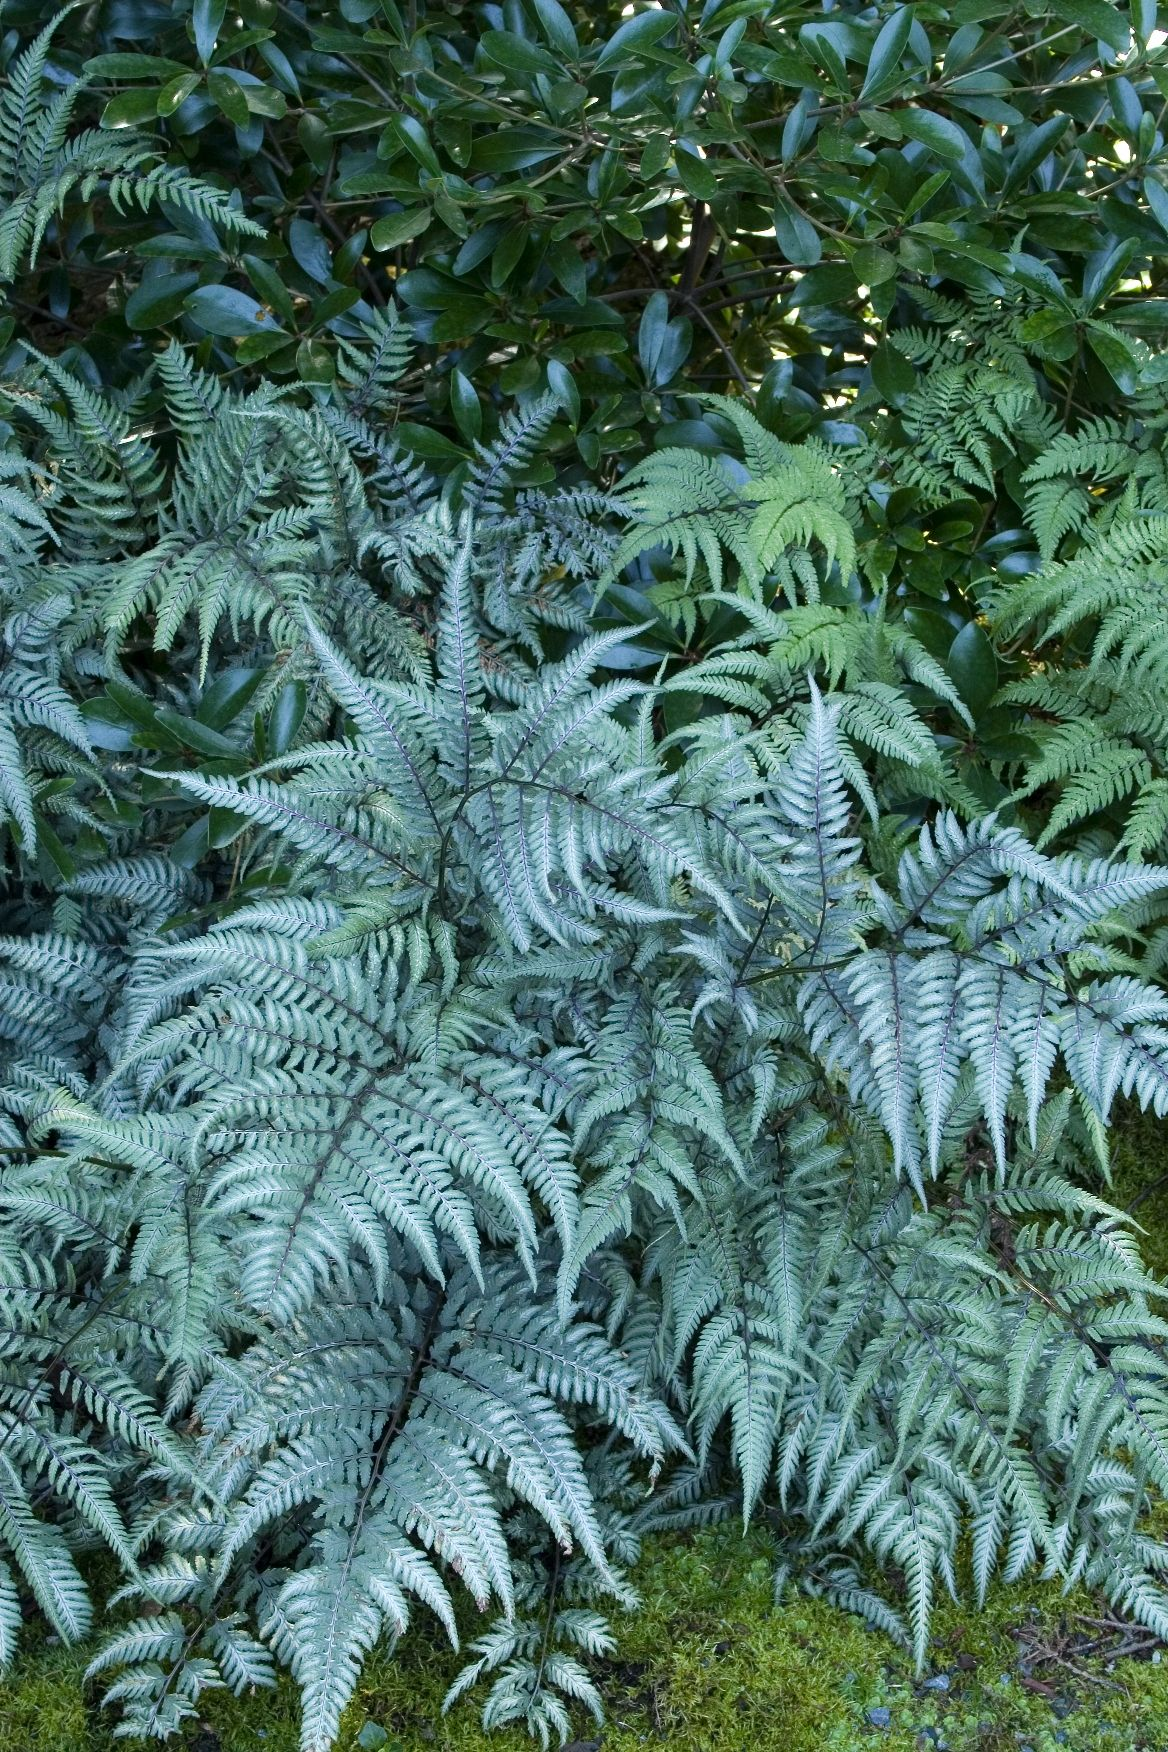 Japanese Painted Fern Has A Short Spreading Habit That Looks Great Planted In A Low Trough Set In A Bright Bu Japanese Painted Fern Shade Plants Shade Garden